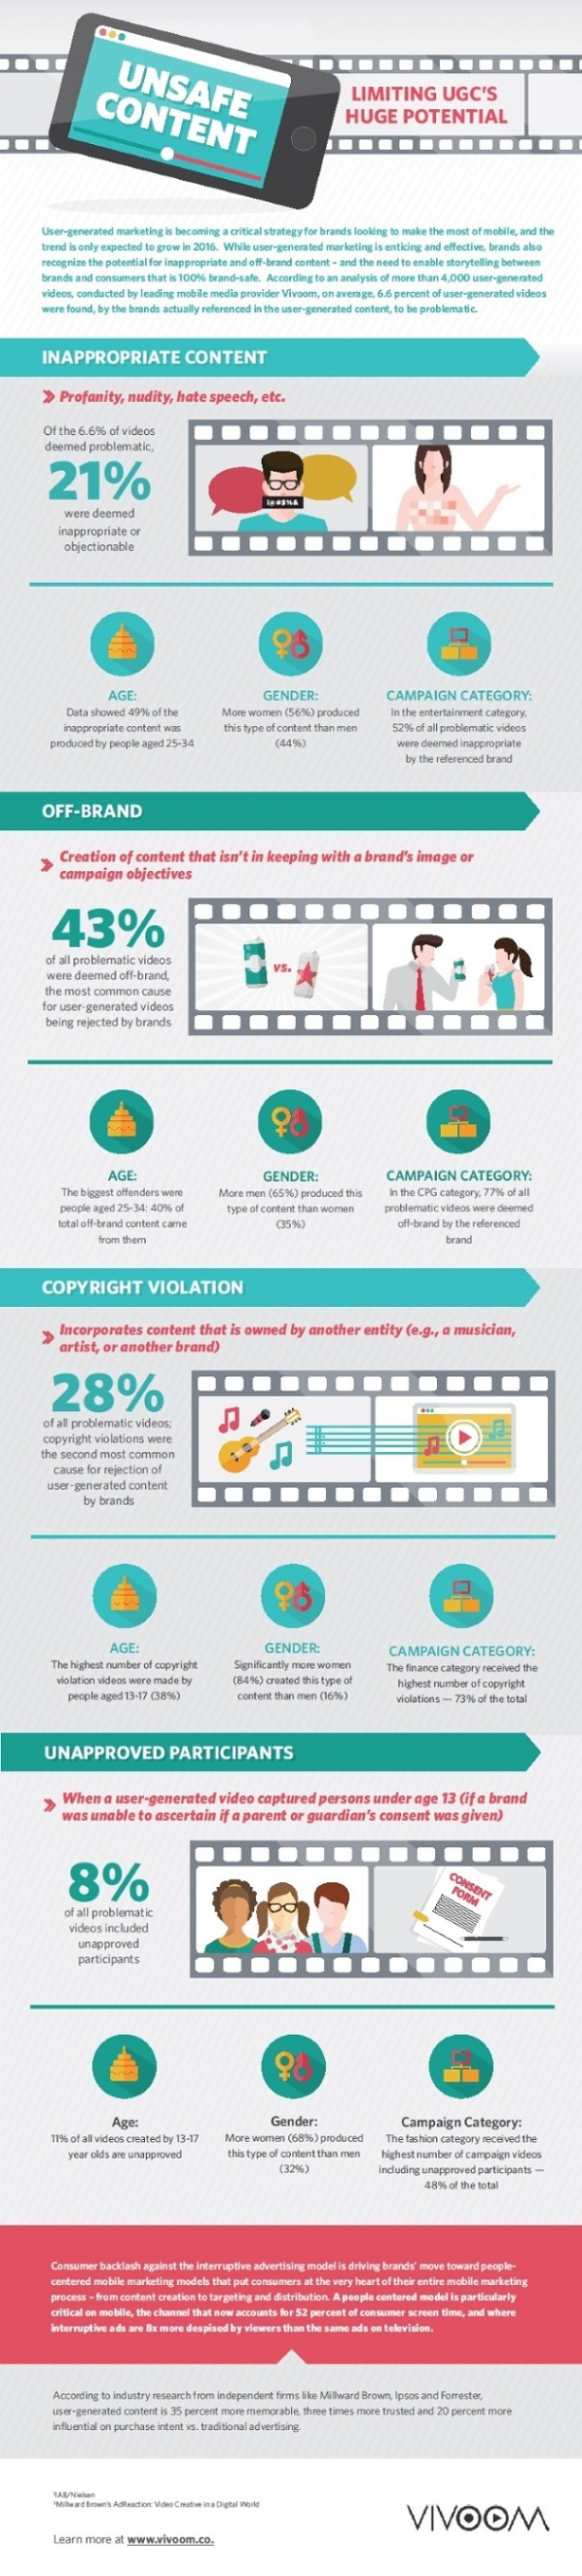 160430-beware-of-unsafe-user-generated-content-infographic